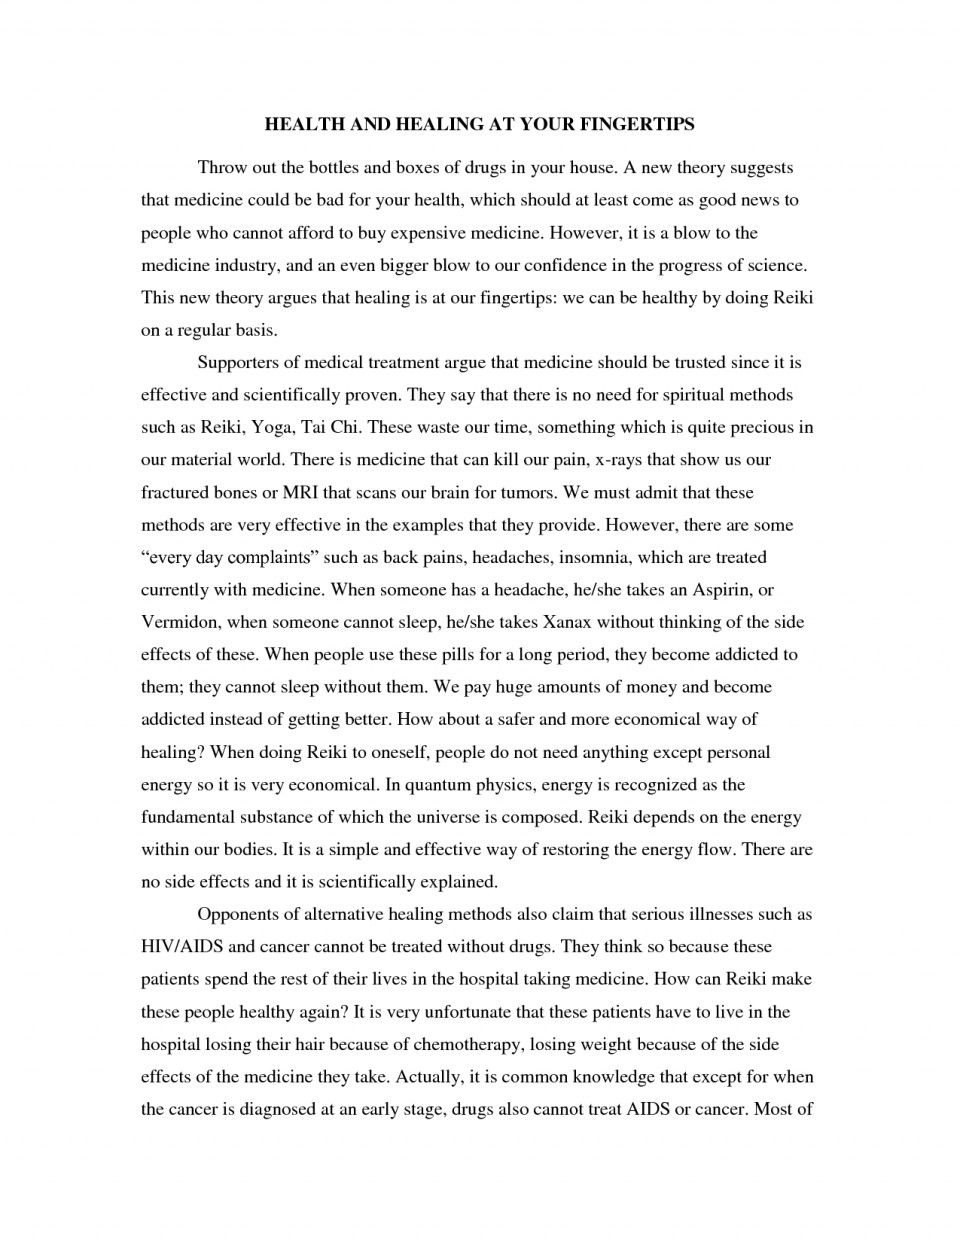 016 Mentor Argument Essay Page How To Write Good Argumentatives Astounding Argumentative Examples Ap Lang Sample Pdf Download For Middle School 960